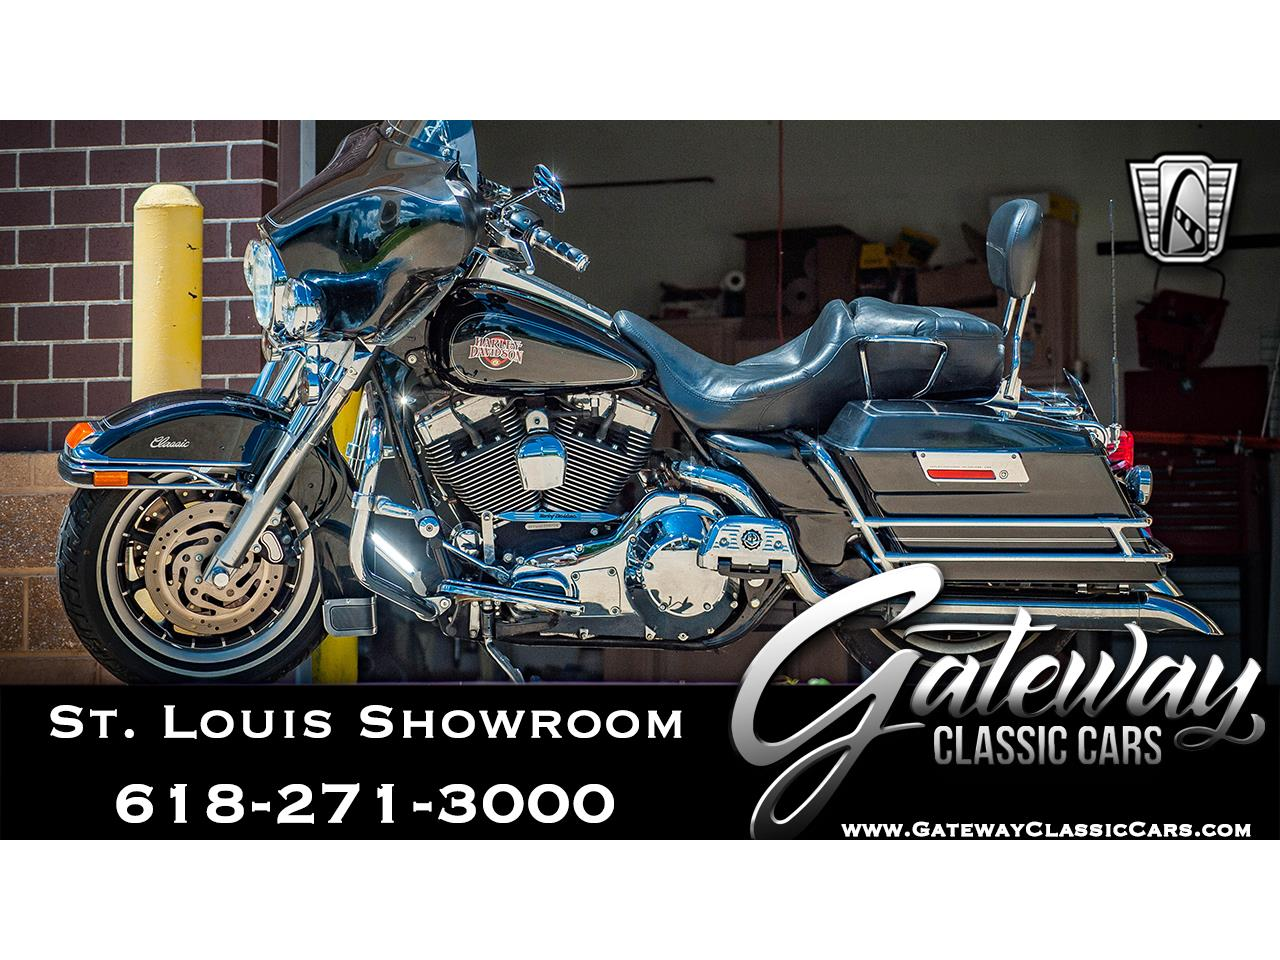 Large Picture of 2004 Harley-Davidson Motorcycle located in O'Fallon Illinois - $12,000.00 Offered by Gateway Classic Cars - St. Louis - QD6F